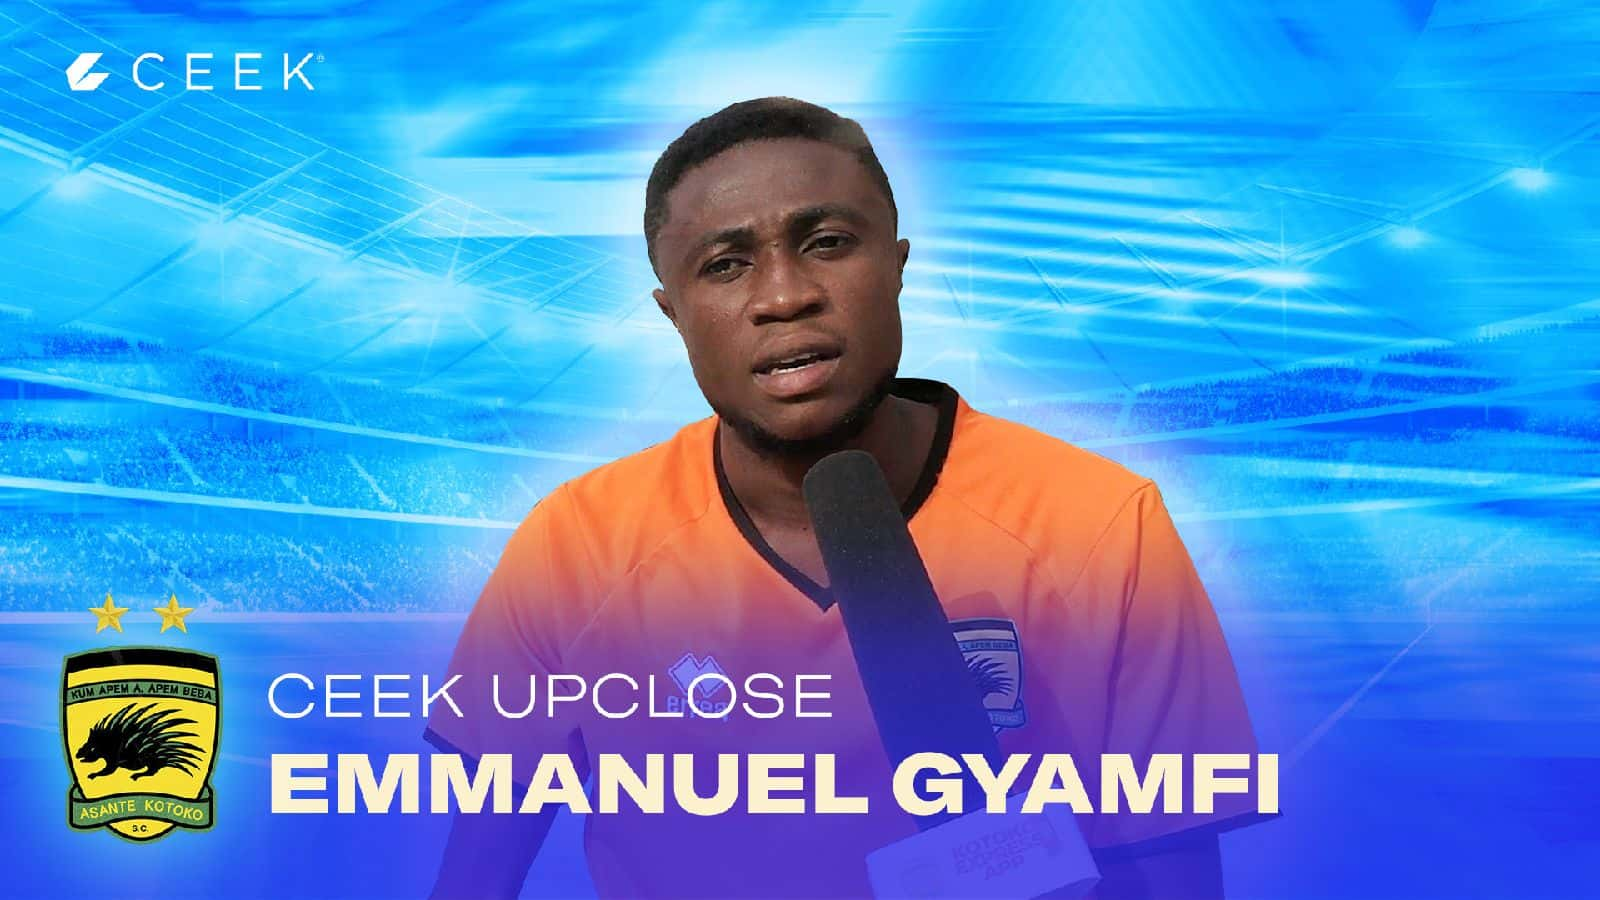 Emmanuel Gyamfi We have quality players and we can overcome them